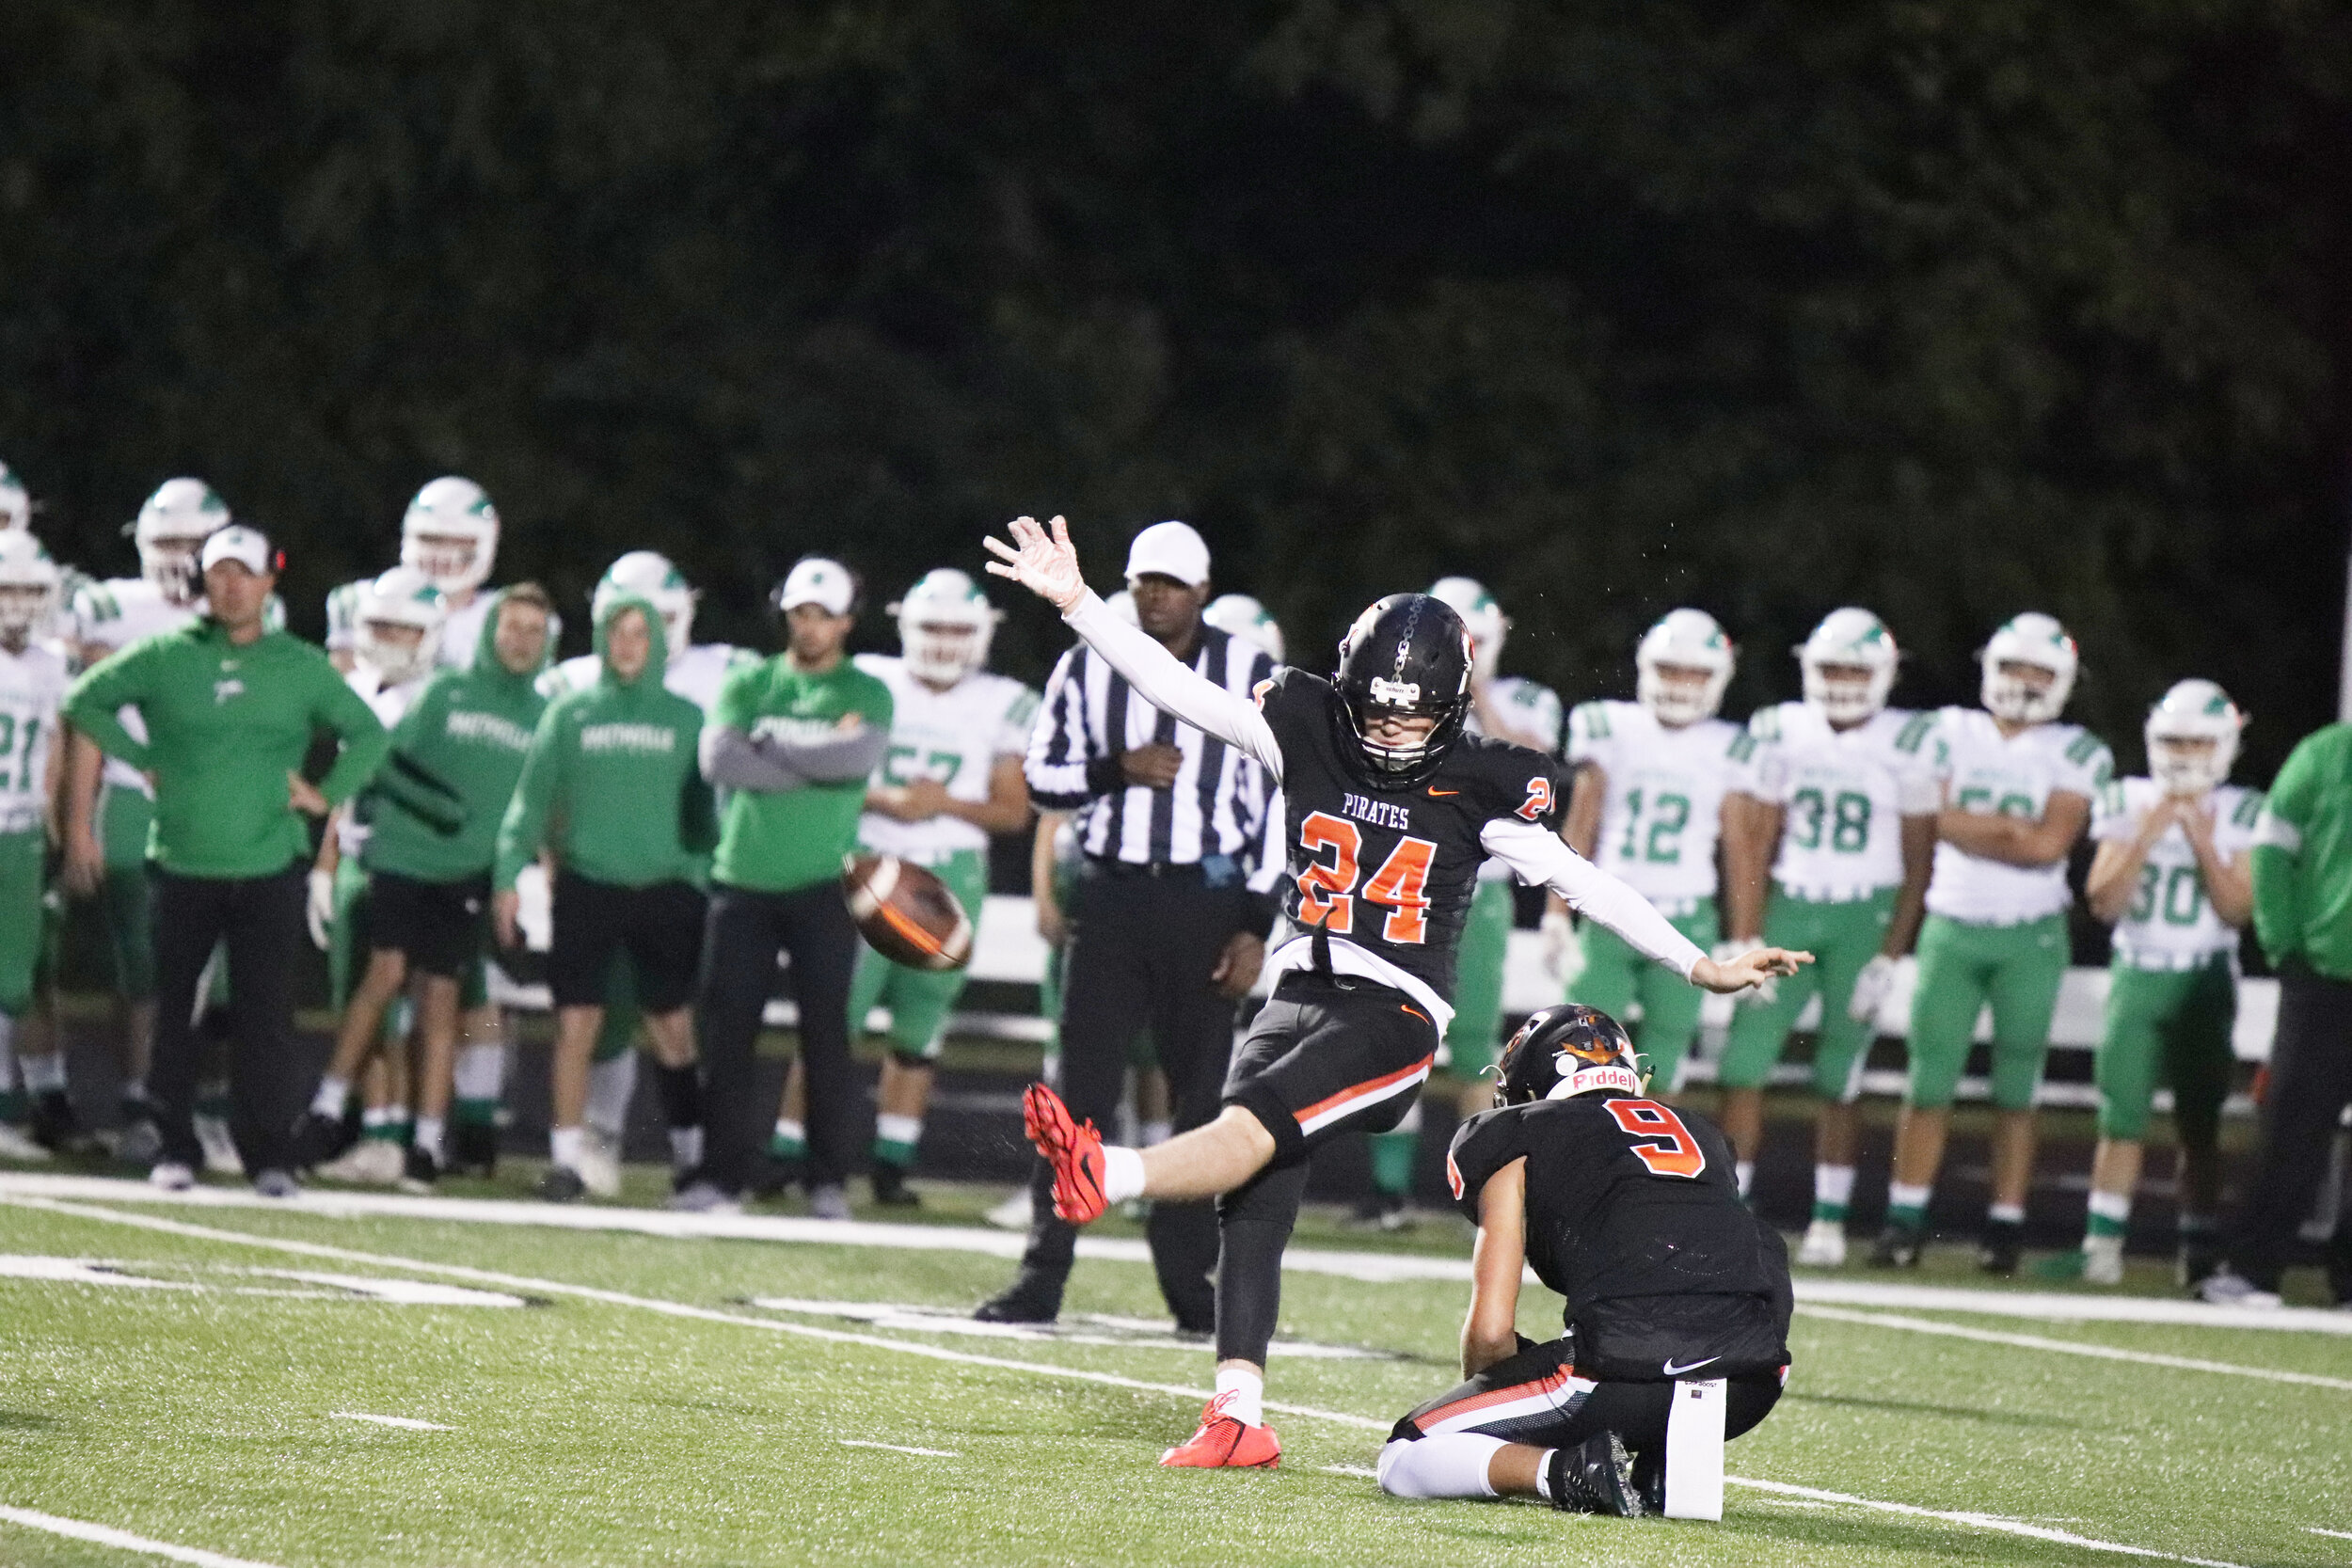 ROSS MARTIN/Special to the Citizen  Platte County kicker Grant Allen made three field goals against Smithville during a 15-0 victory on Friday, Oct. 4 at Pirate Stadium.